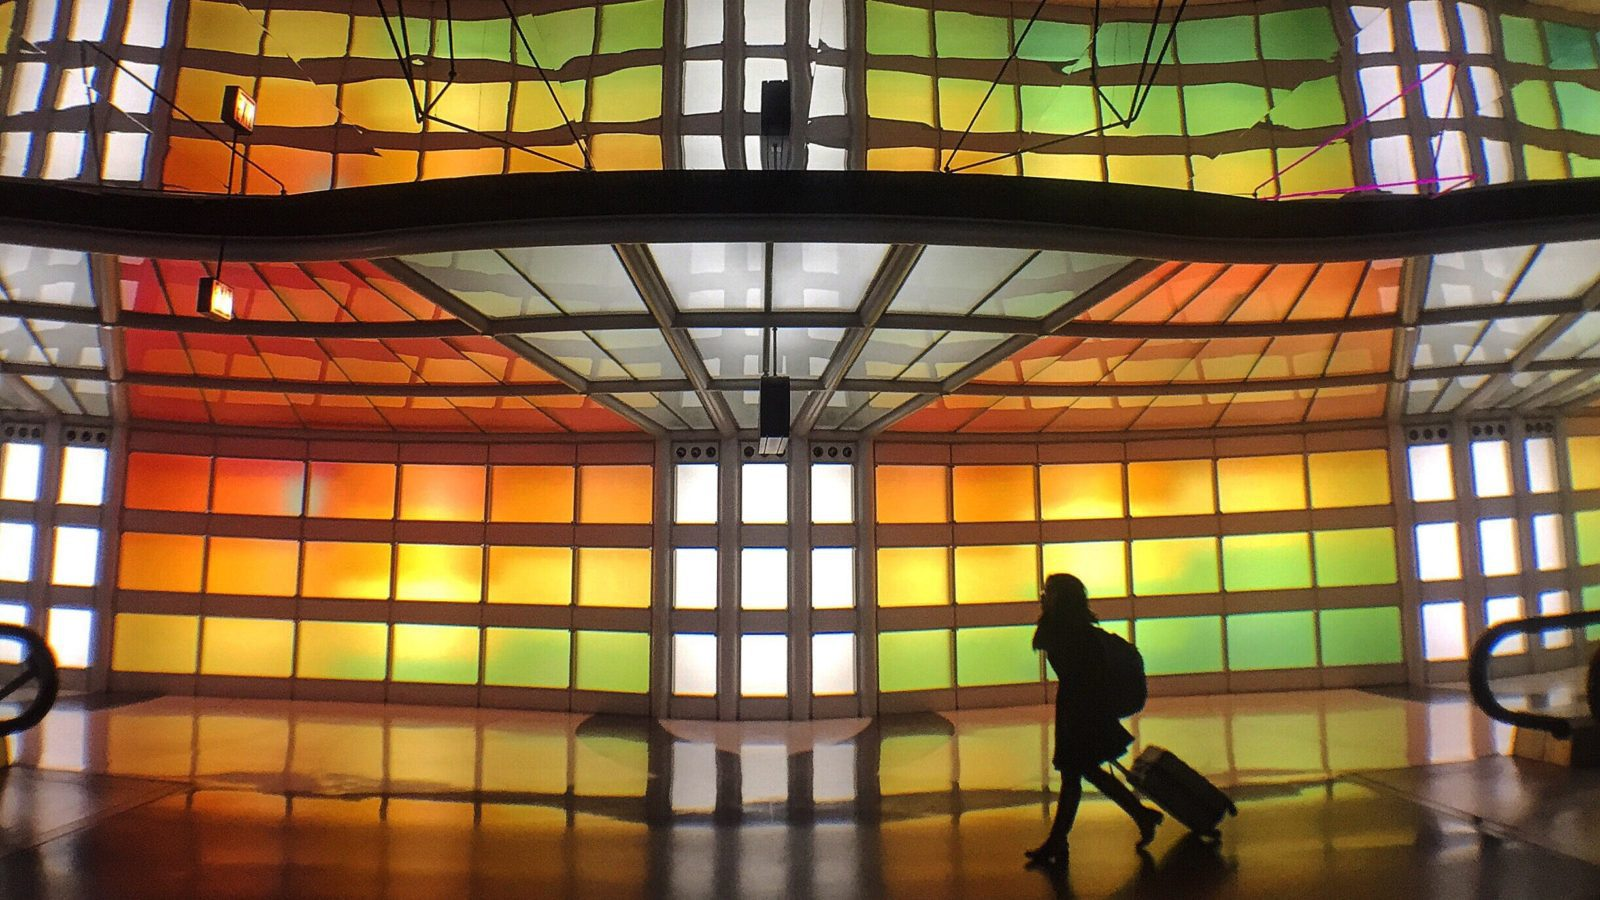 person rolling luggage in front of stained glass display in airport terminal